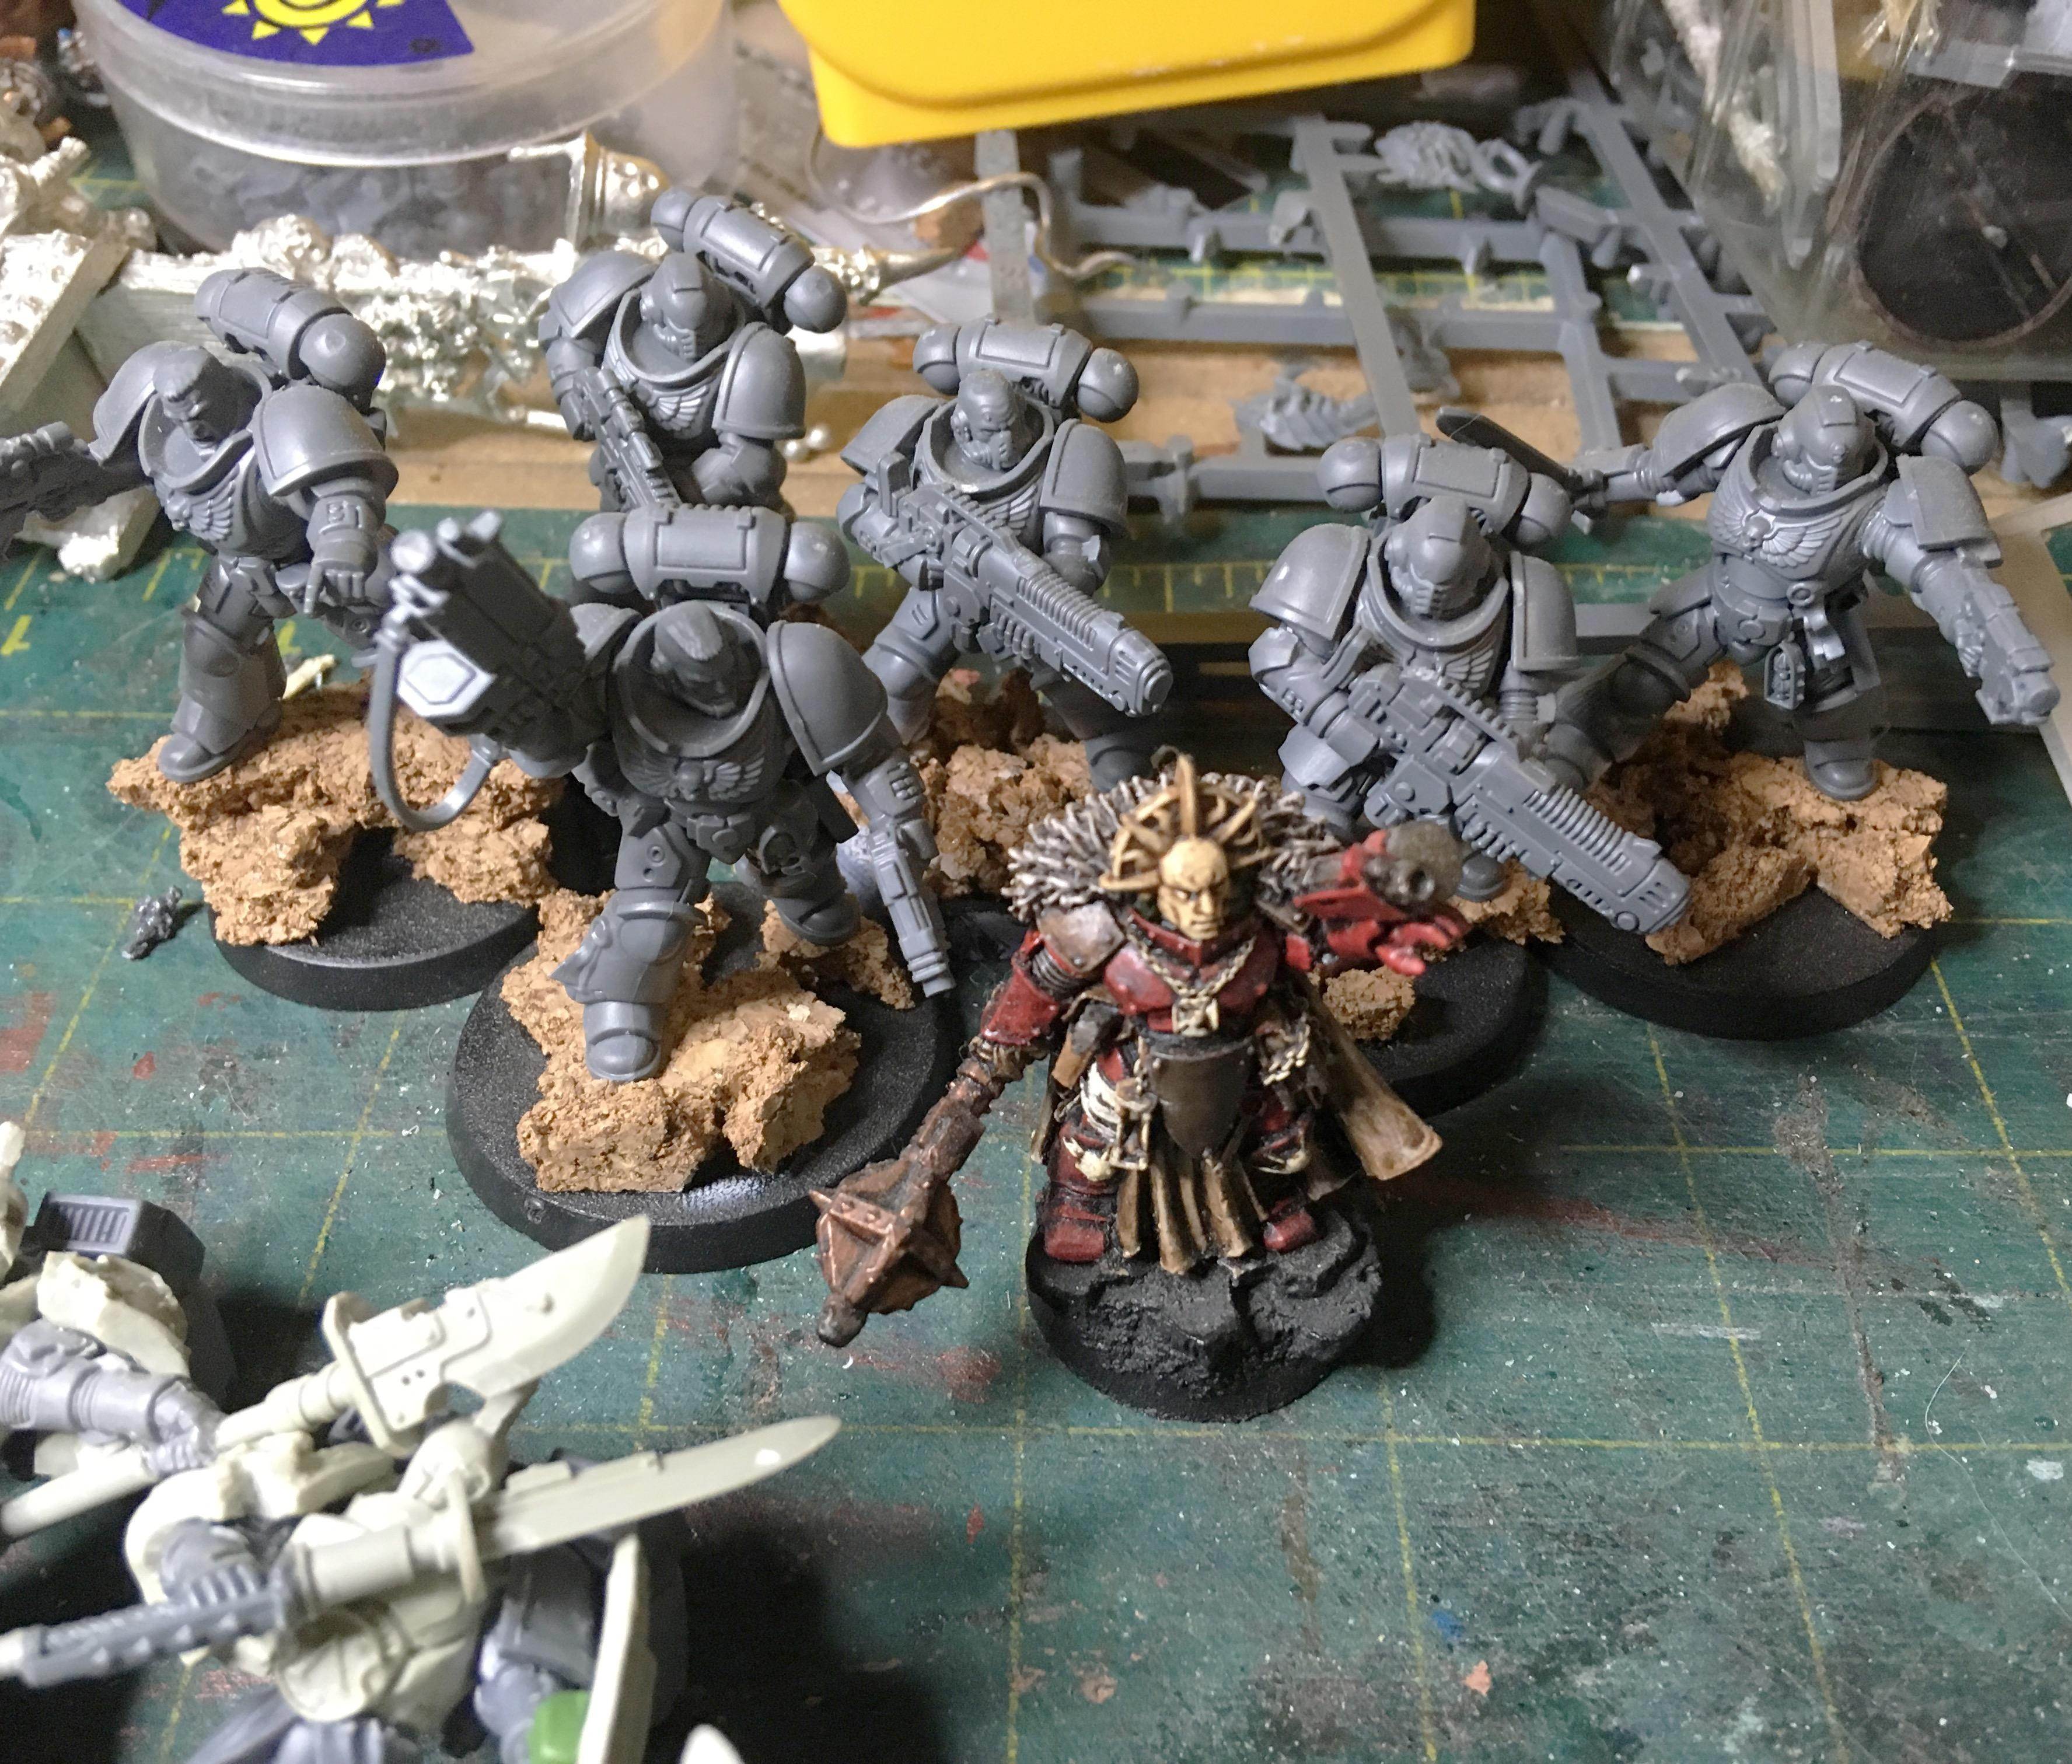 We have some Primaris Marines and other Marine characters. Could build up on them for some interesting results